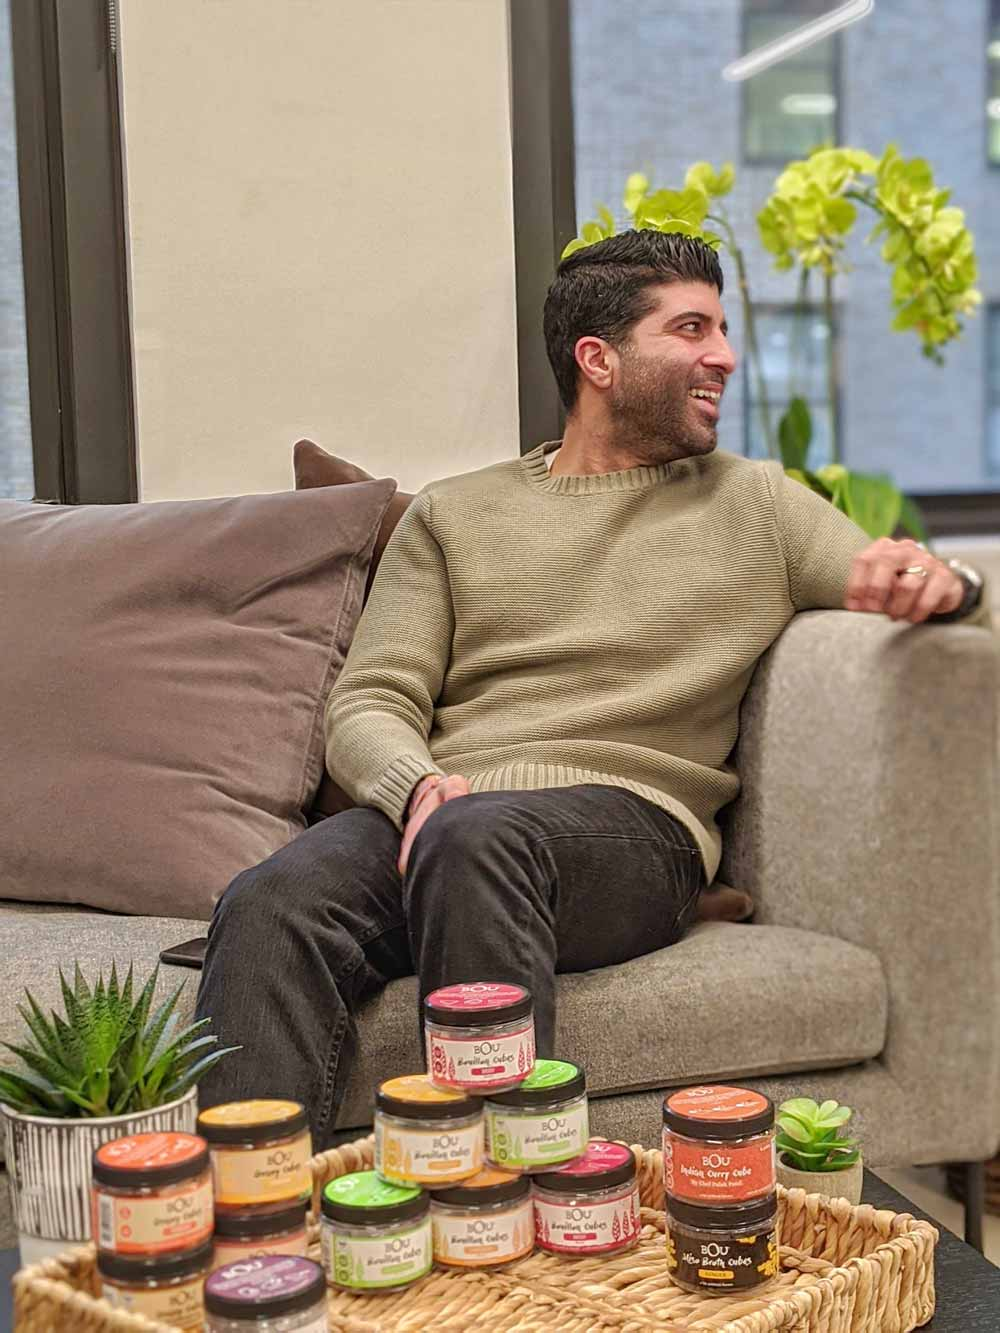 BOU Brands co-founder Kunal Kohli sitting on a couch, smiling, and looking away [Unioncrate]